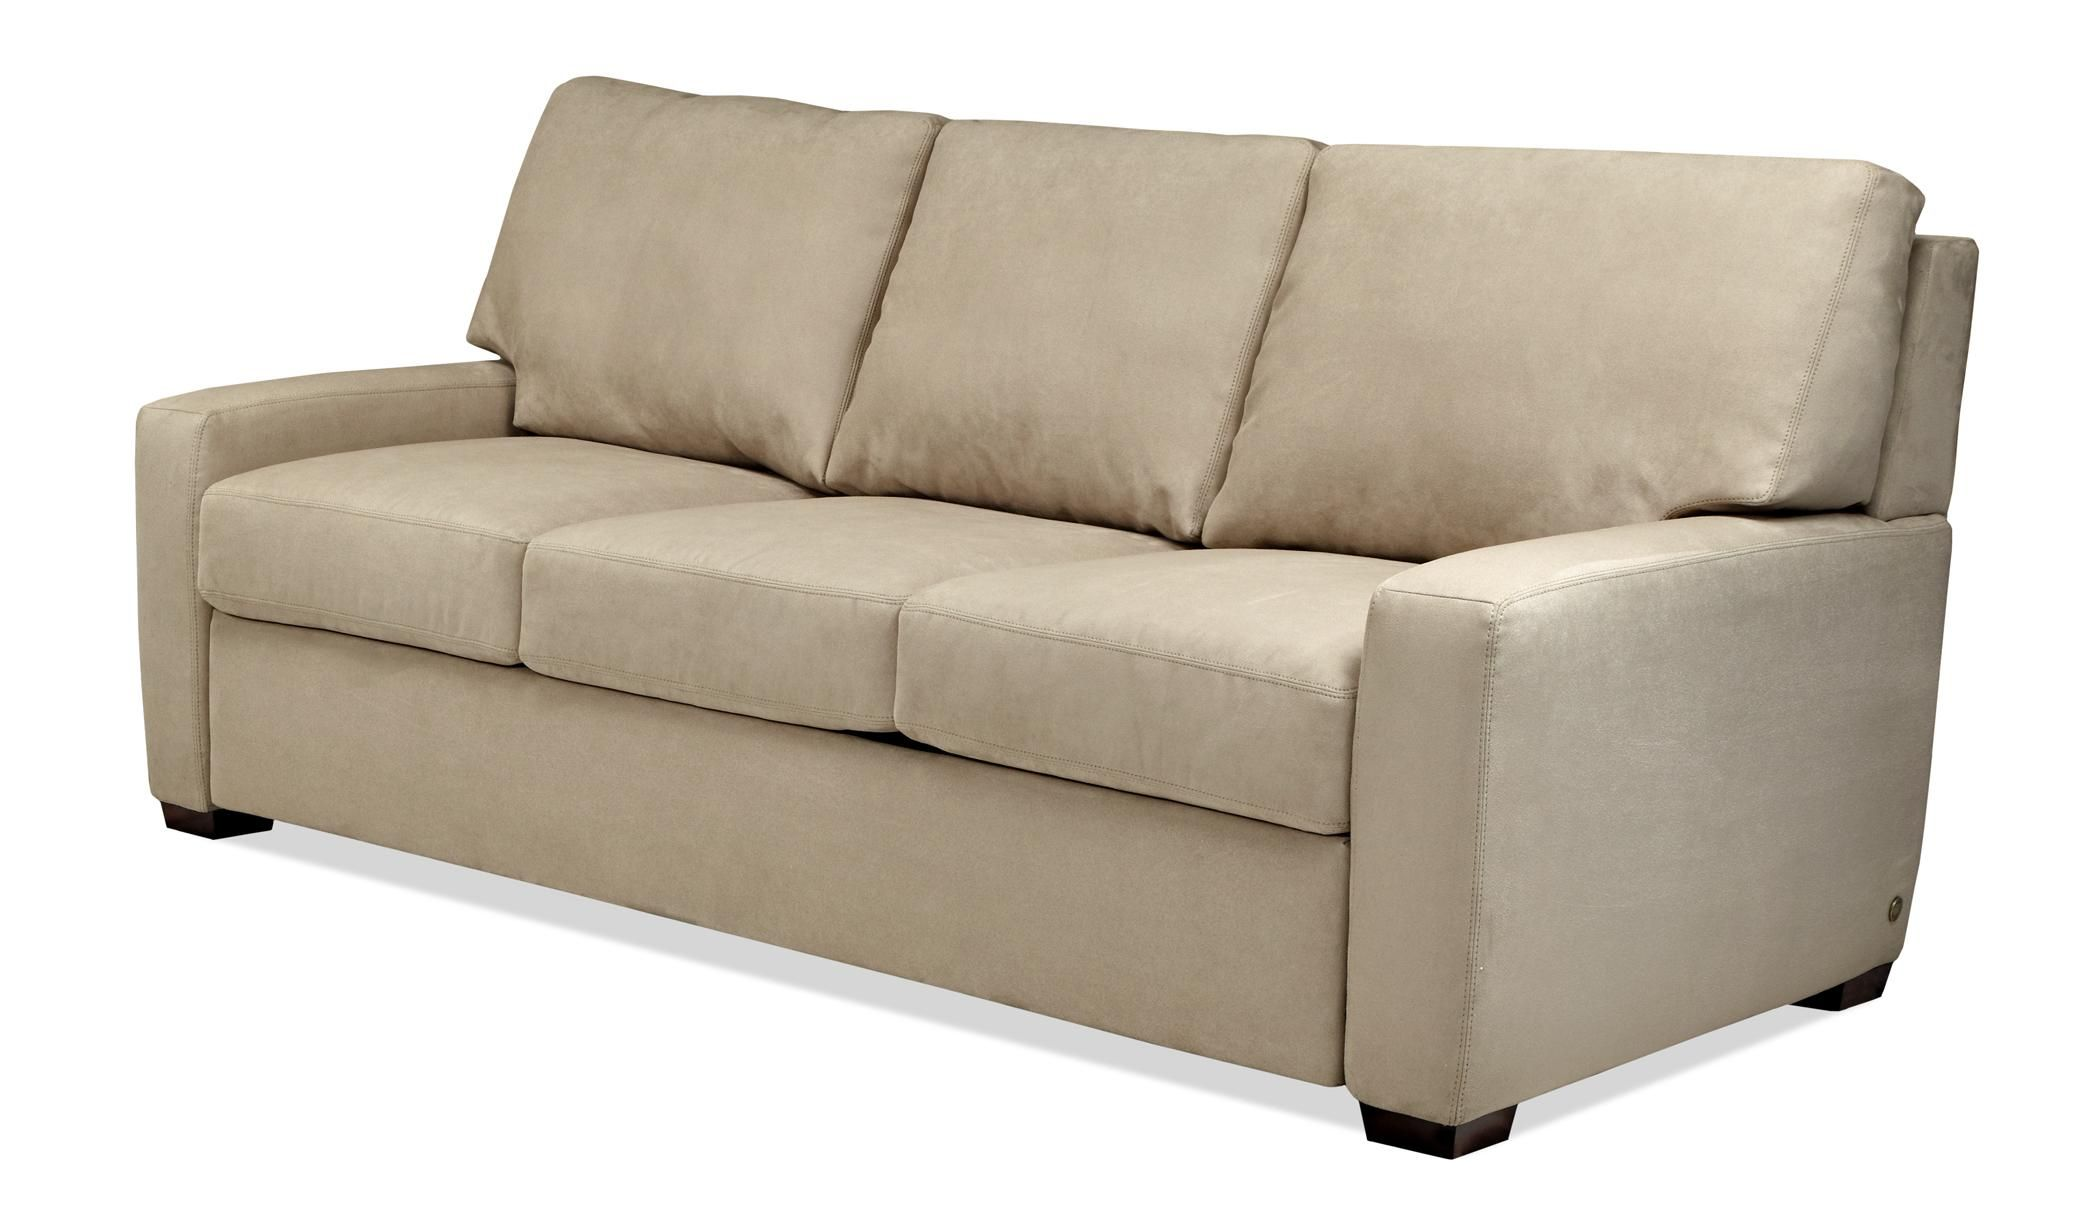 comfort sleeper cassidy sofa sleeper by american leather for the rh pinterest com